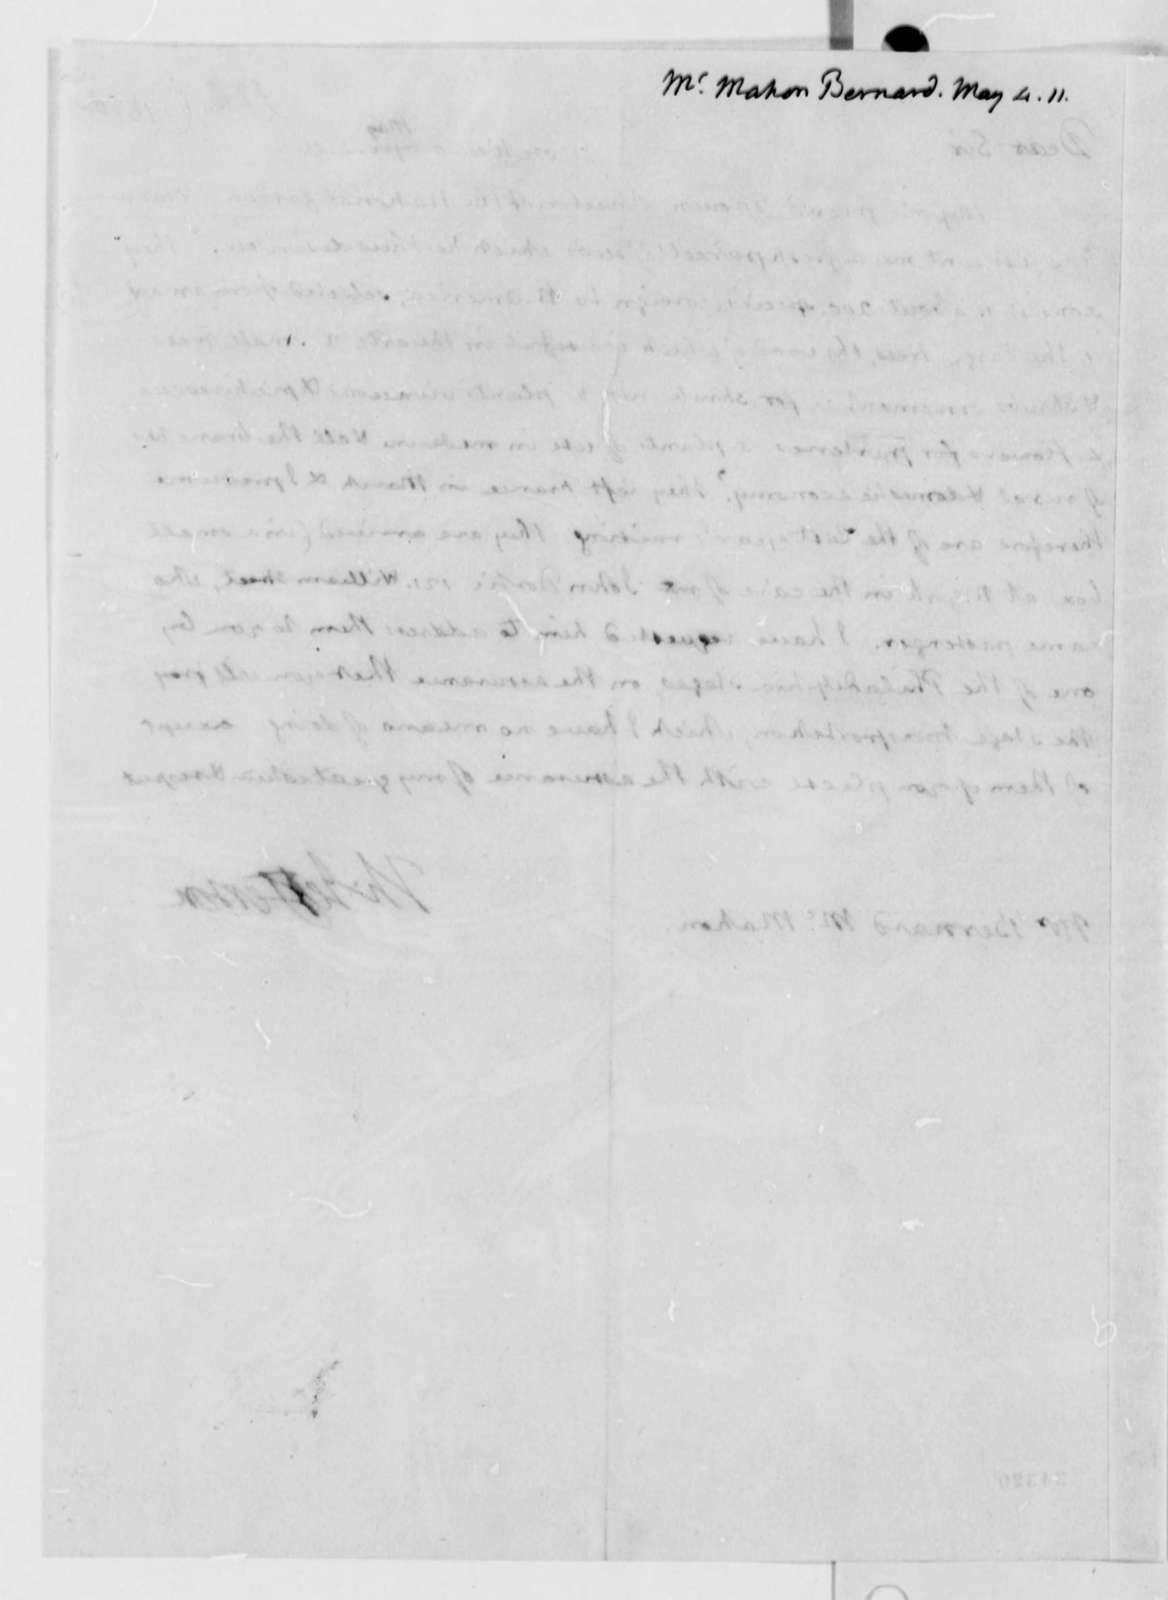 Thomas Jefferson to Bernard McMahon, May 4, 1811